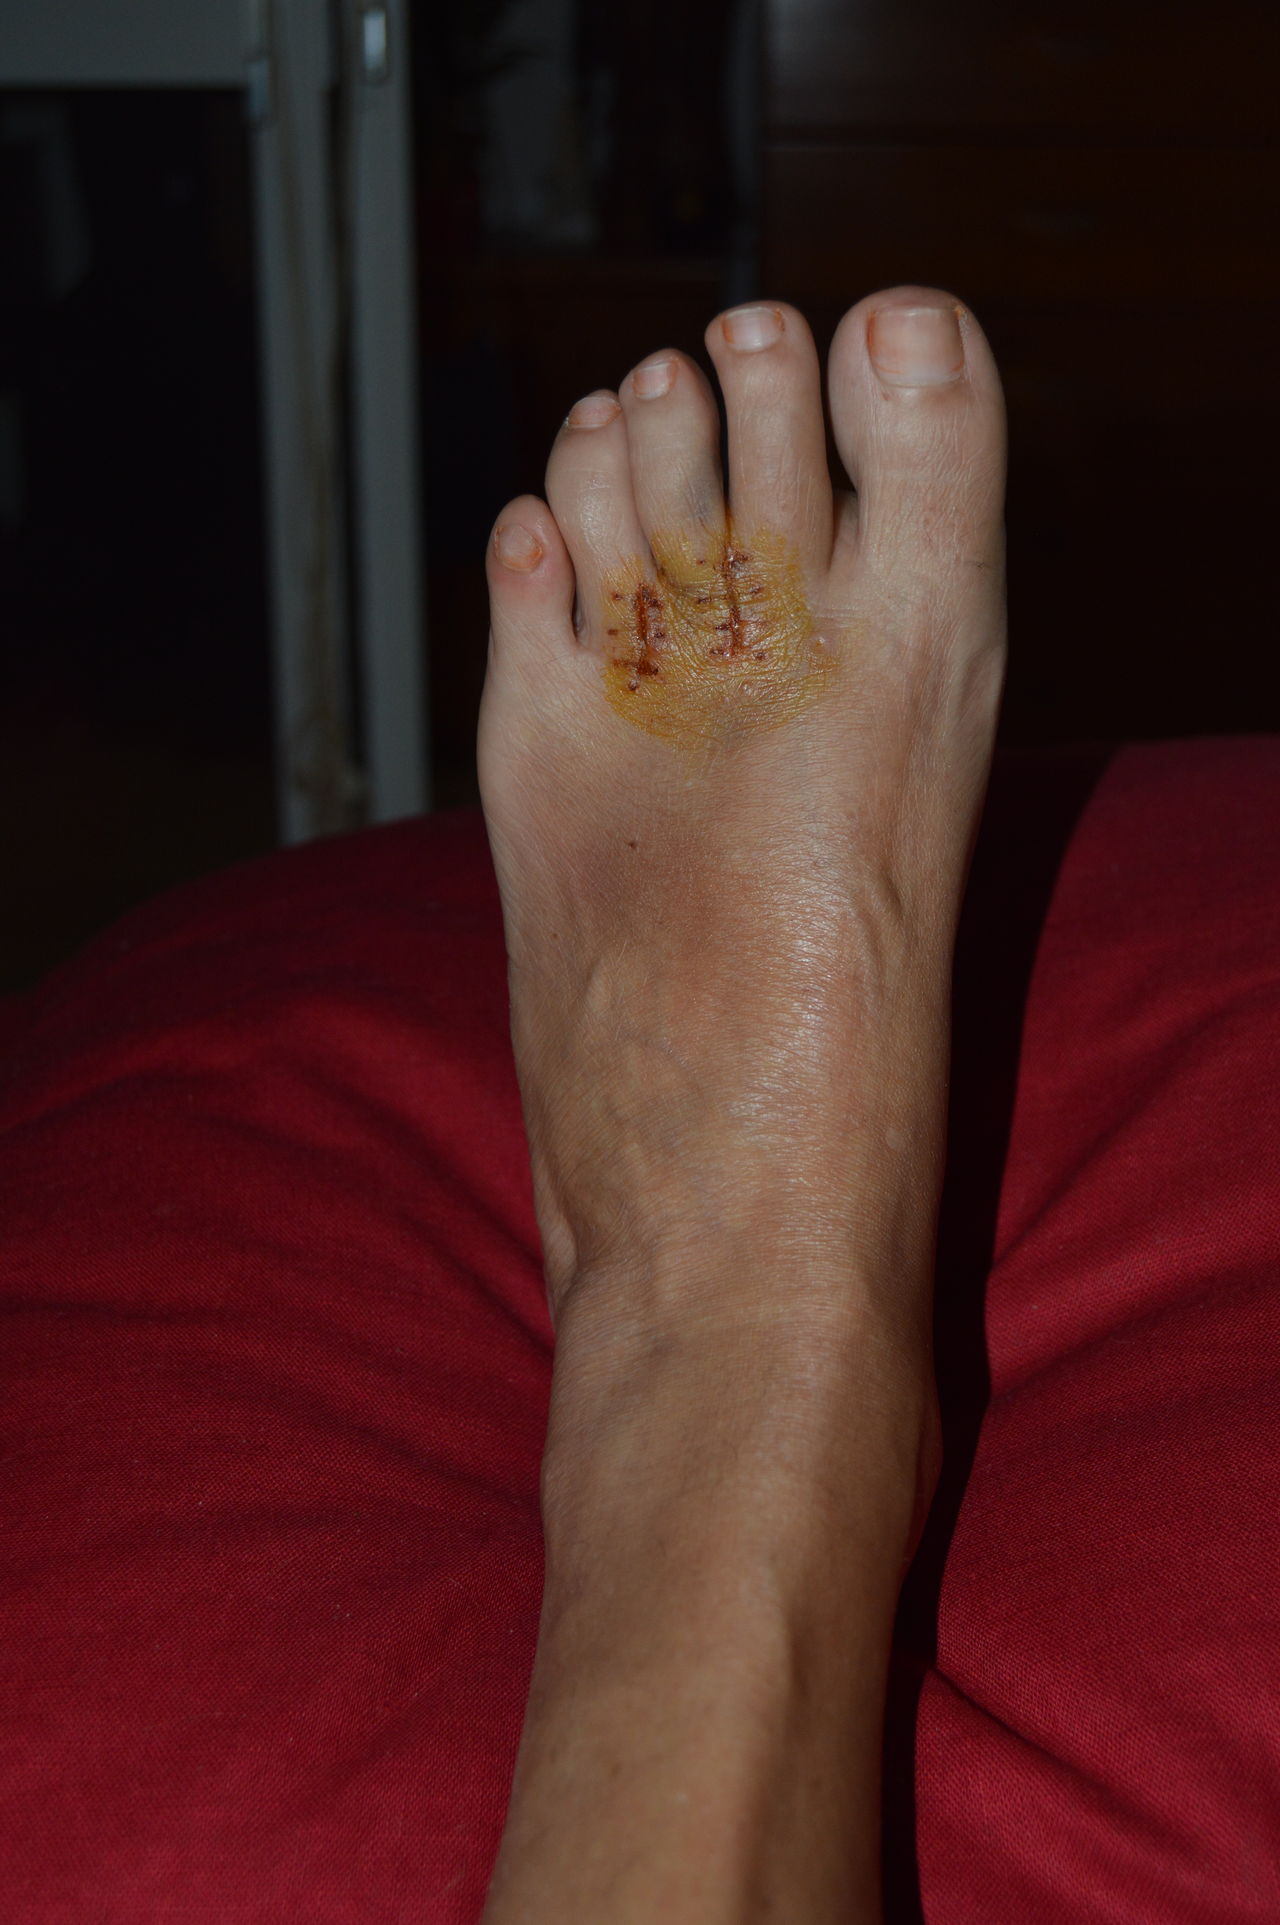 EyeEm Best Shots EyeEm Gallery EyeEmBestPics Foot Mortonneuroma Myleftfoot Recovering Surgery